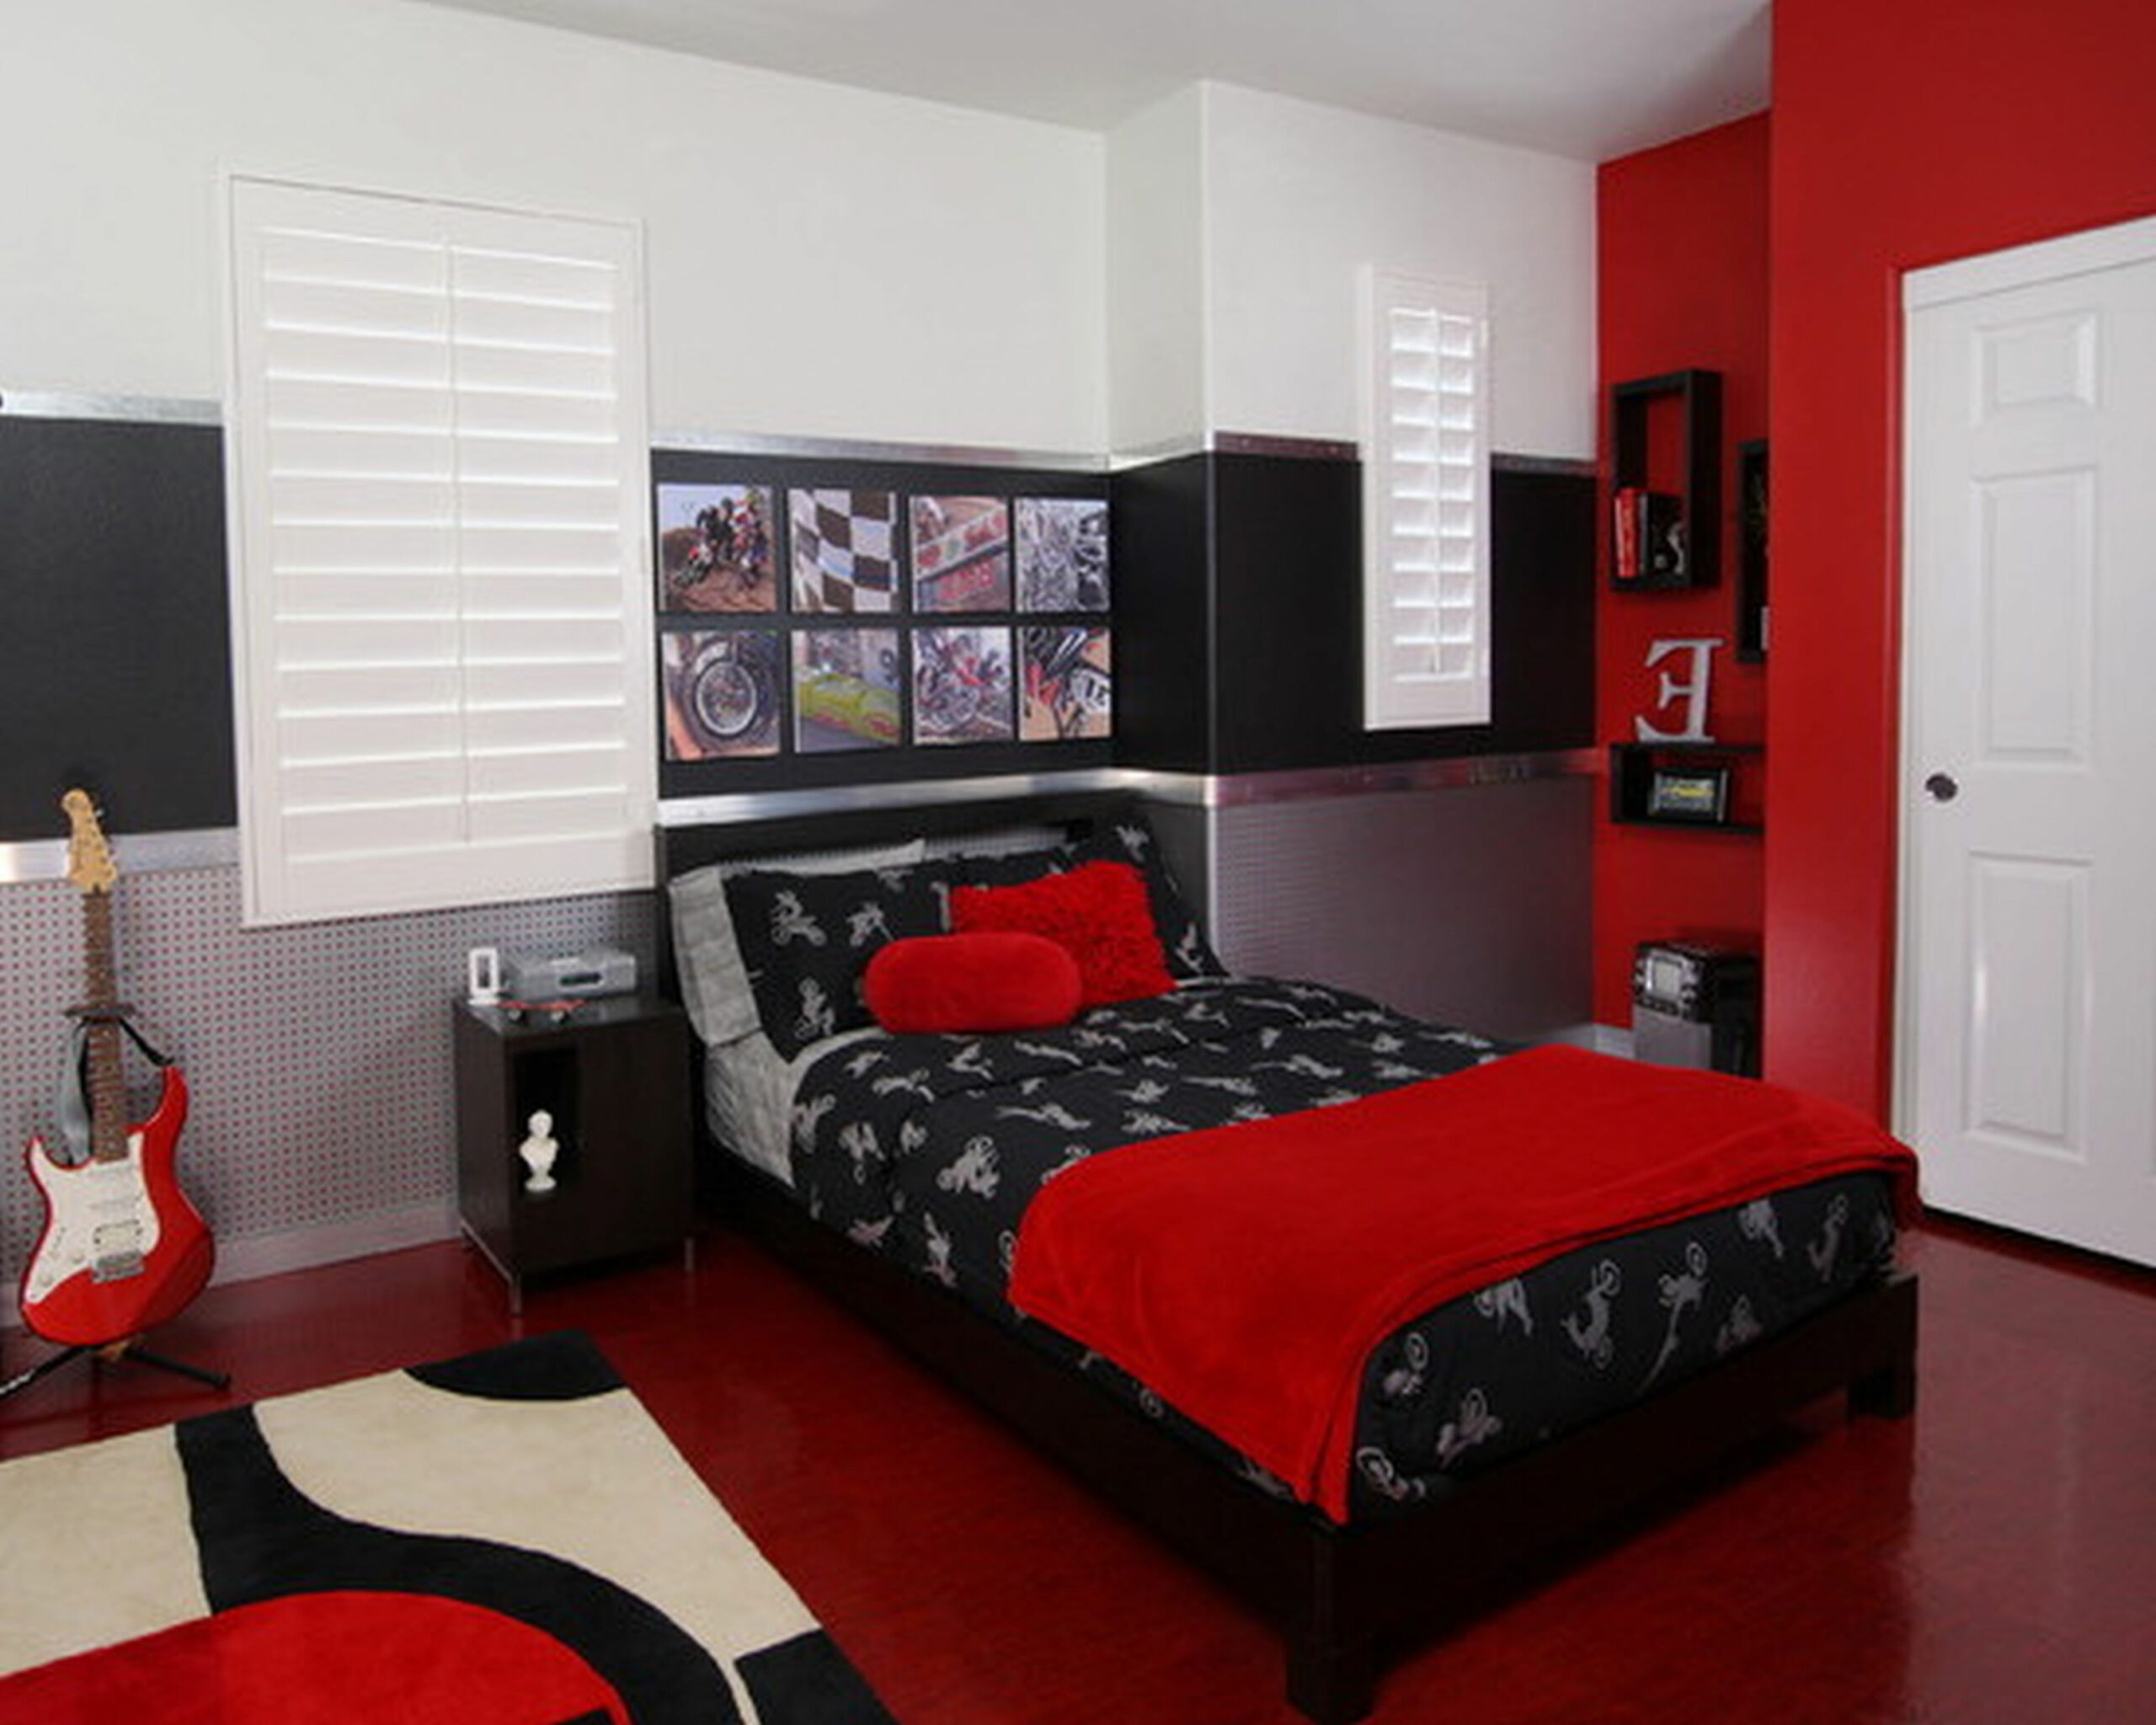 Magnificent rooms with red black and white decorating ideas ..